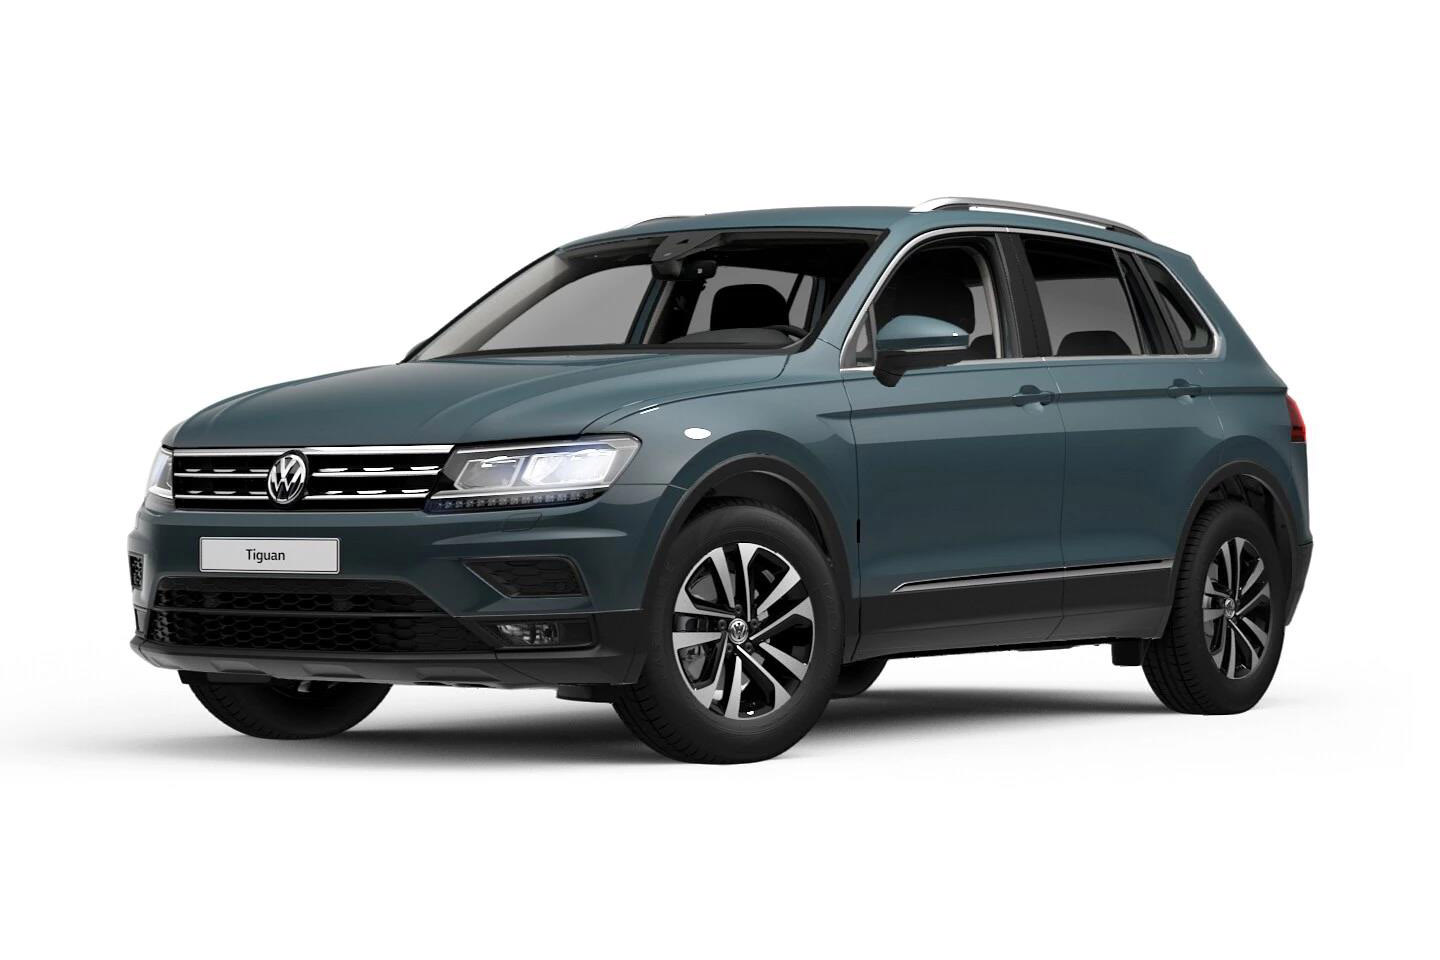 Volkswagen Tiguan Exclusive